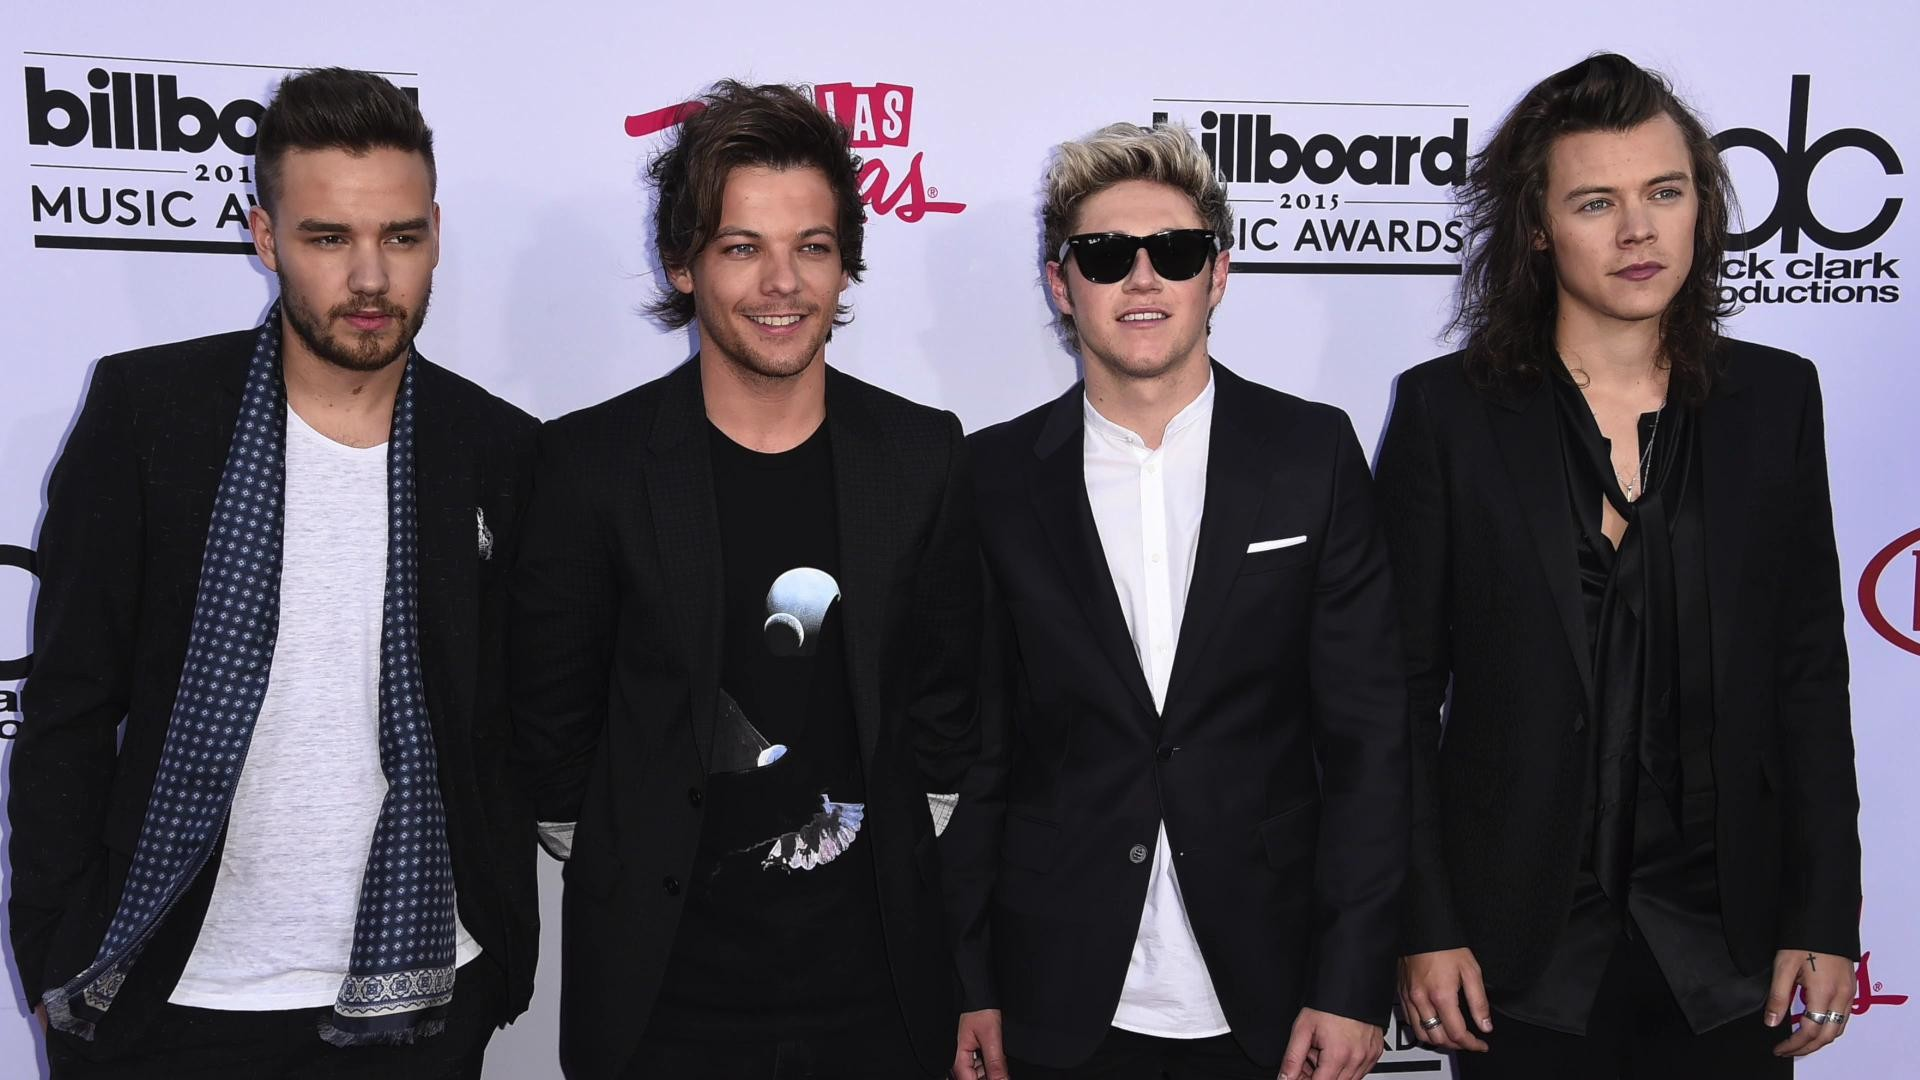 One Direction releases new single 'Drag Me Down'